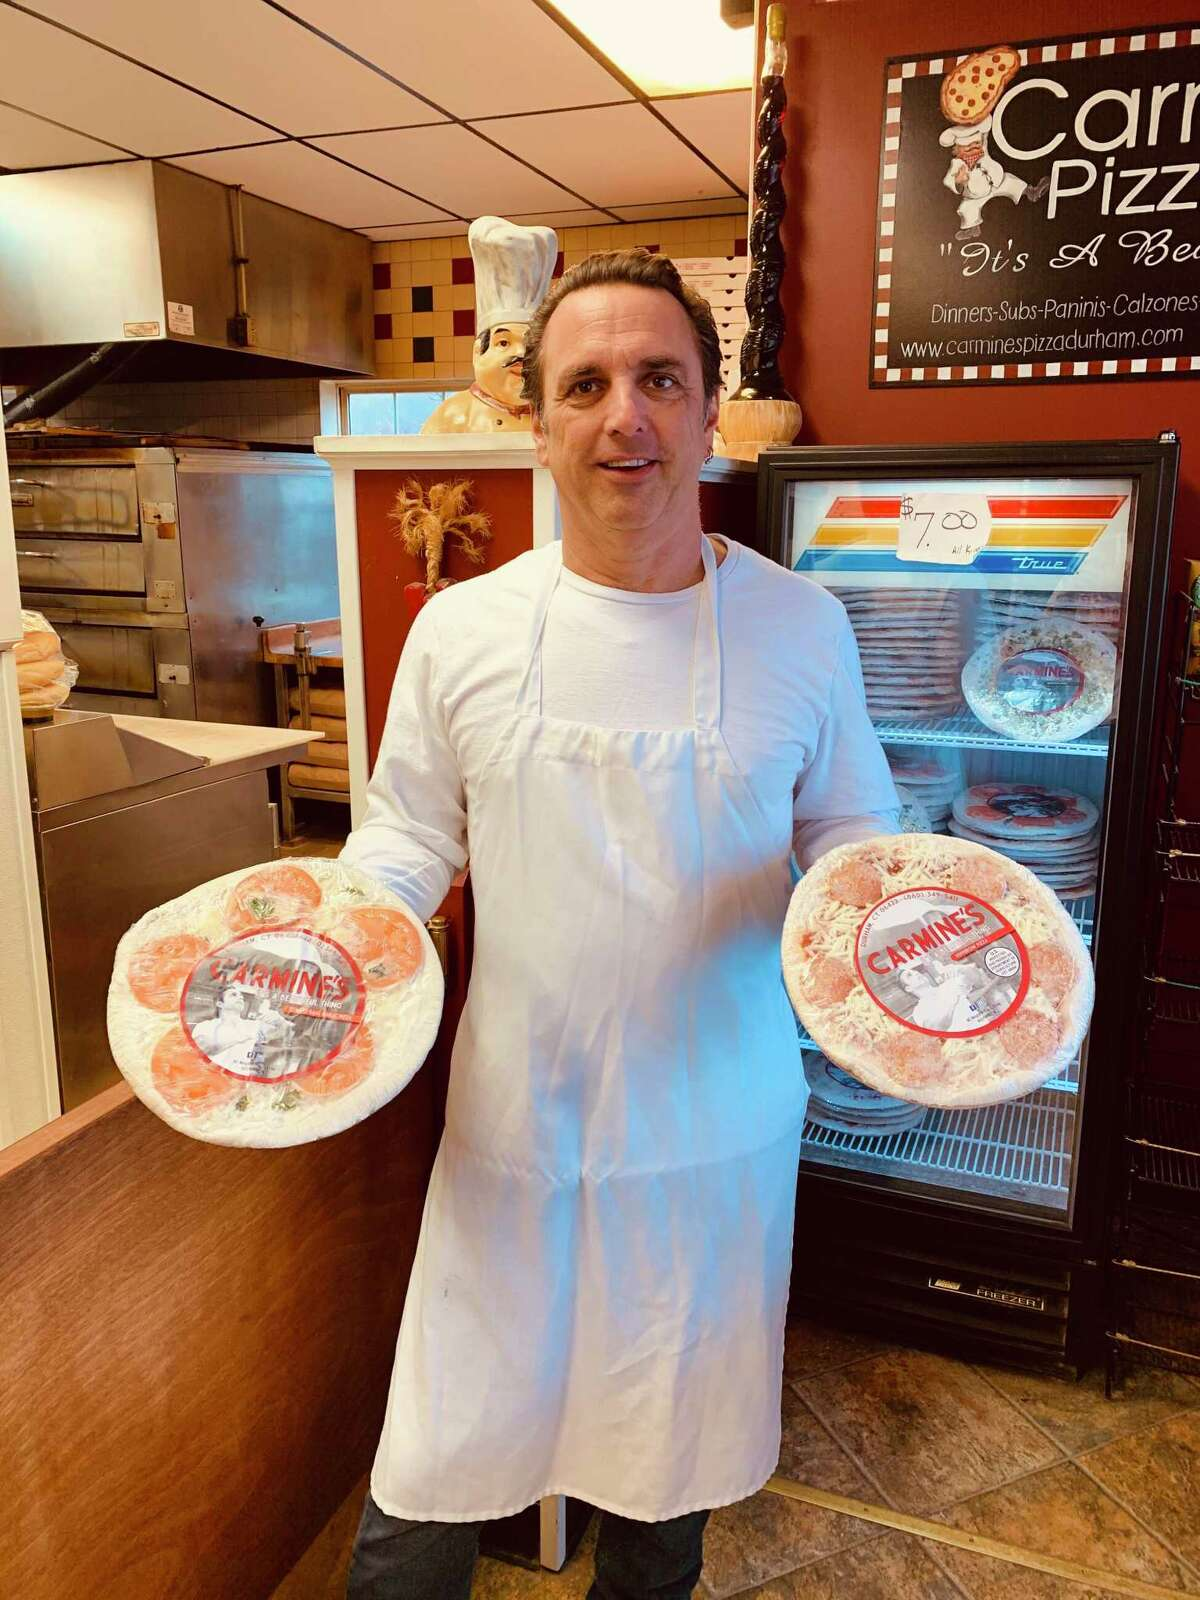 For nearly 18 years, Heath Andranovich, owner of Carmine's Pizza & Italian Takeout and Carmine's Frozen Pizzas, has been creating his New Haven-style gourmet pies with locally sourced ingredients using his 100-year-old family recipe.